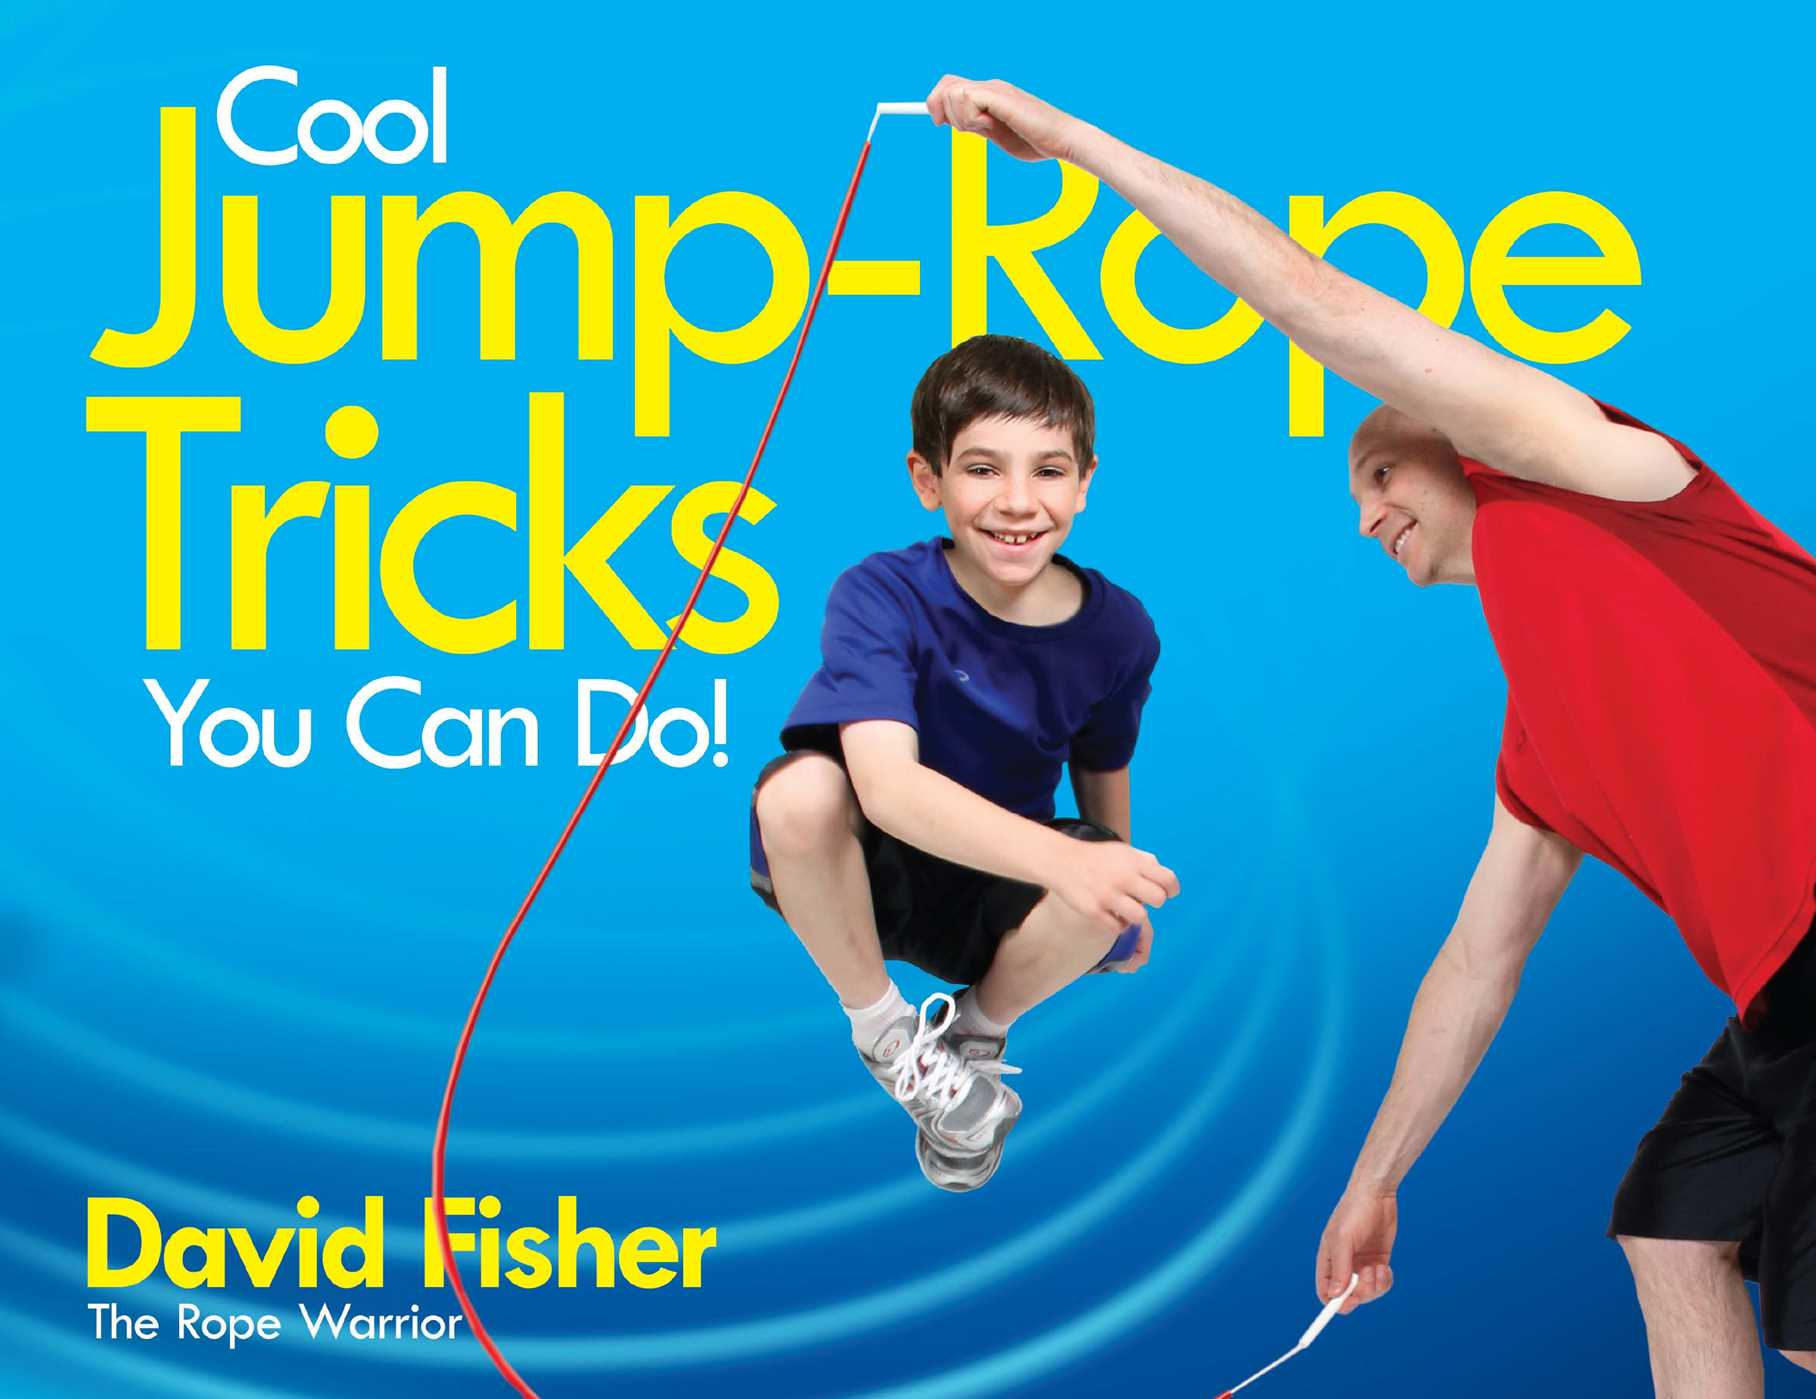 Cool-jump-rope-tricks-you-can-do-9781481412315_hr